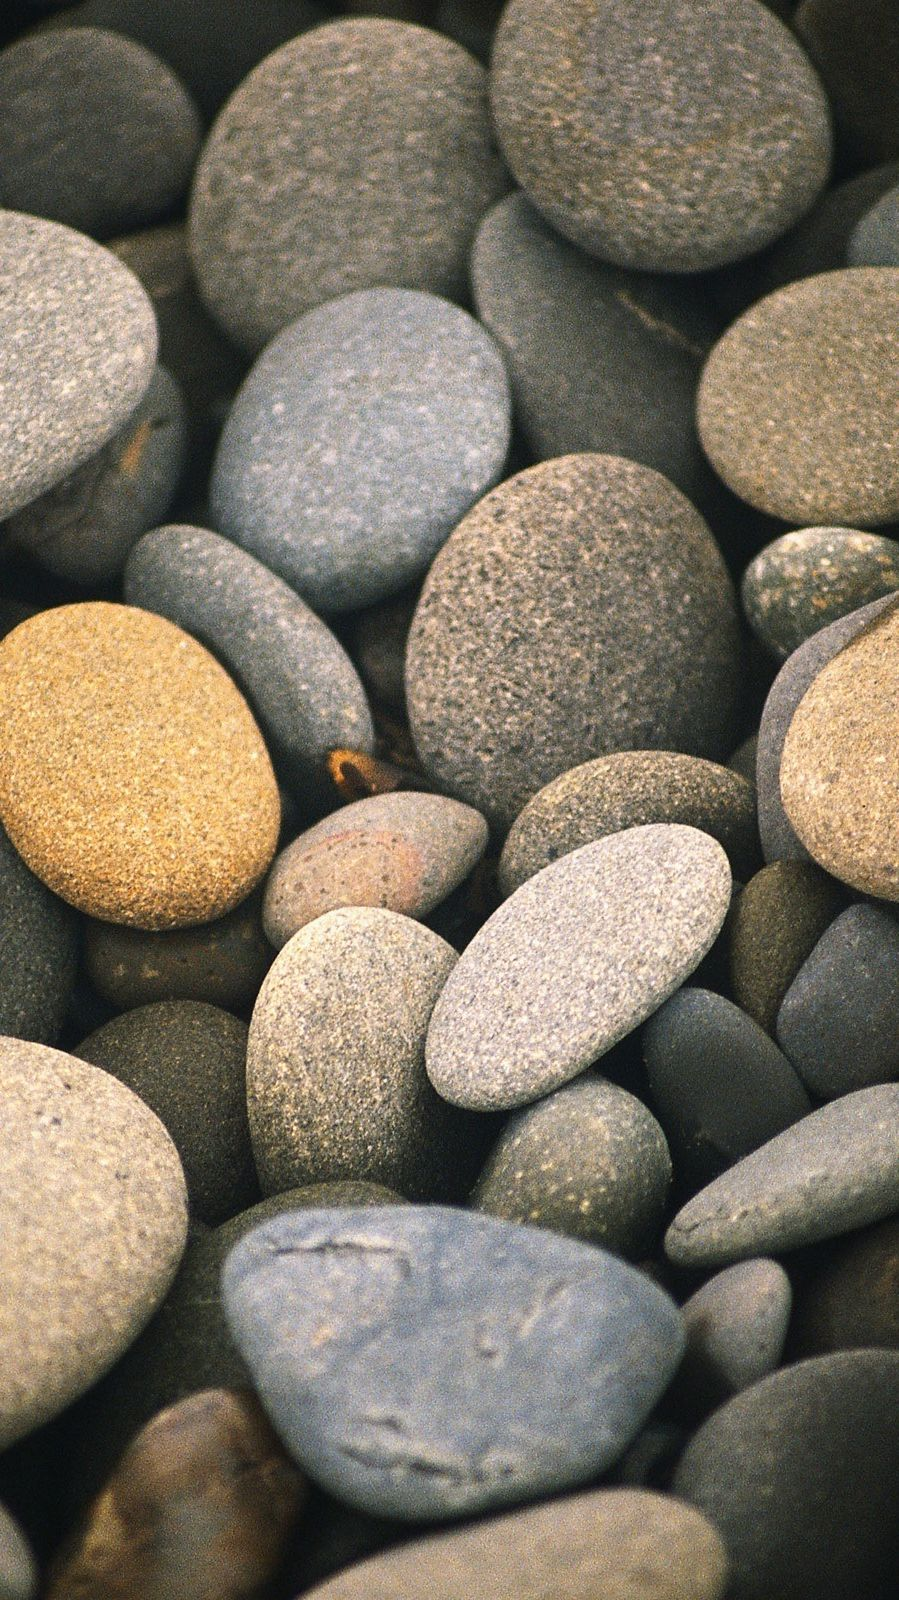 Minimalistic Nature Pebbles iPhone Wallpaper Wallpapers in 2019 899x1600